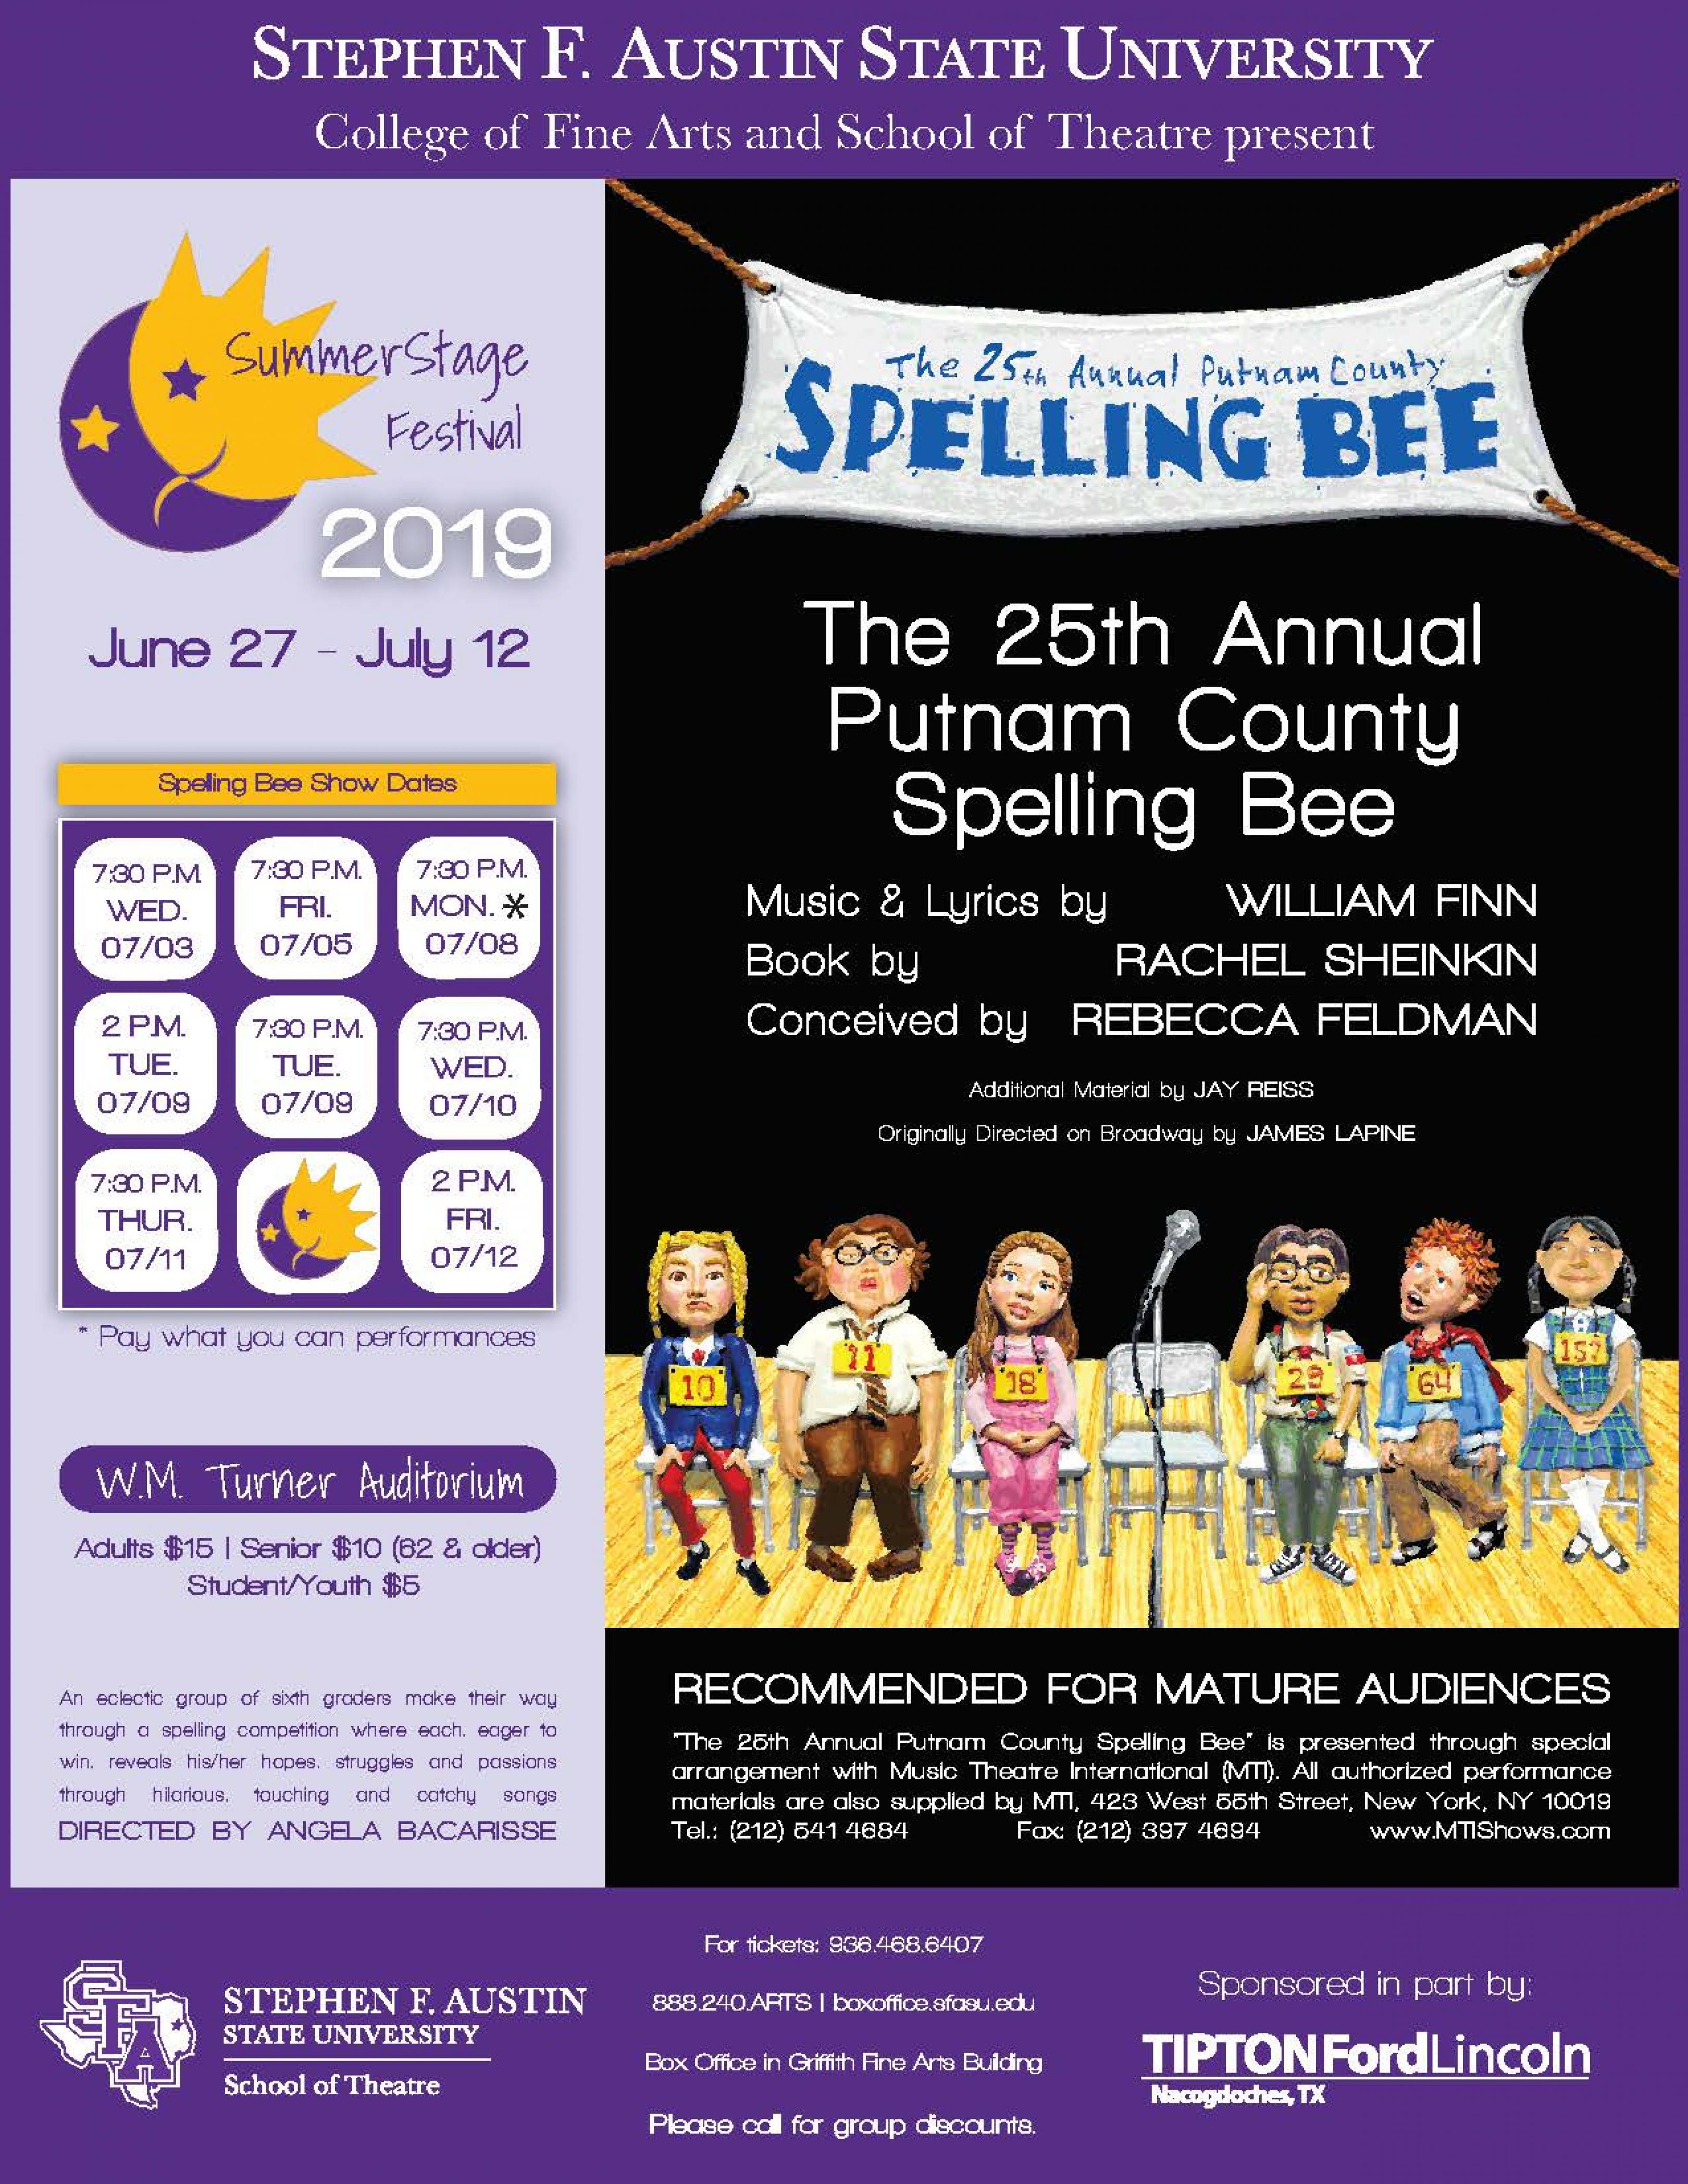 publicity image for The 25th Annual Putnam County Spelling Bee